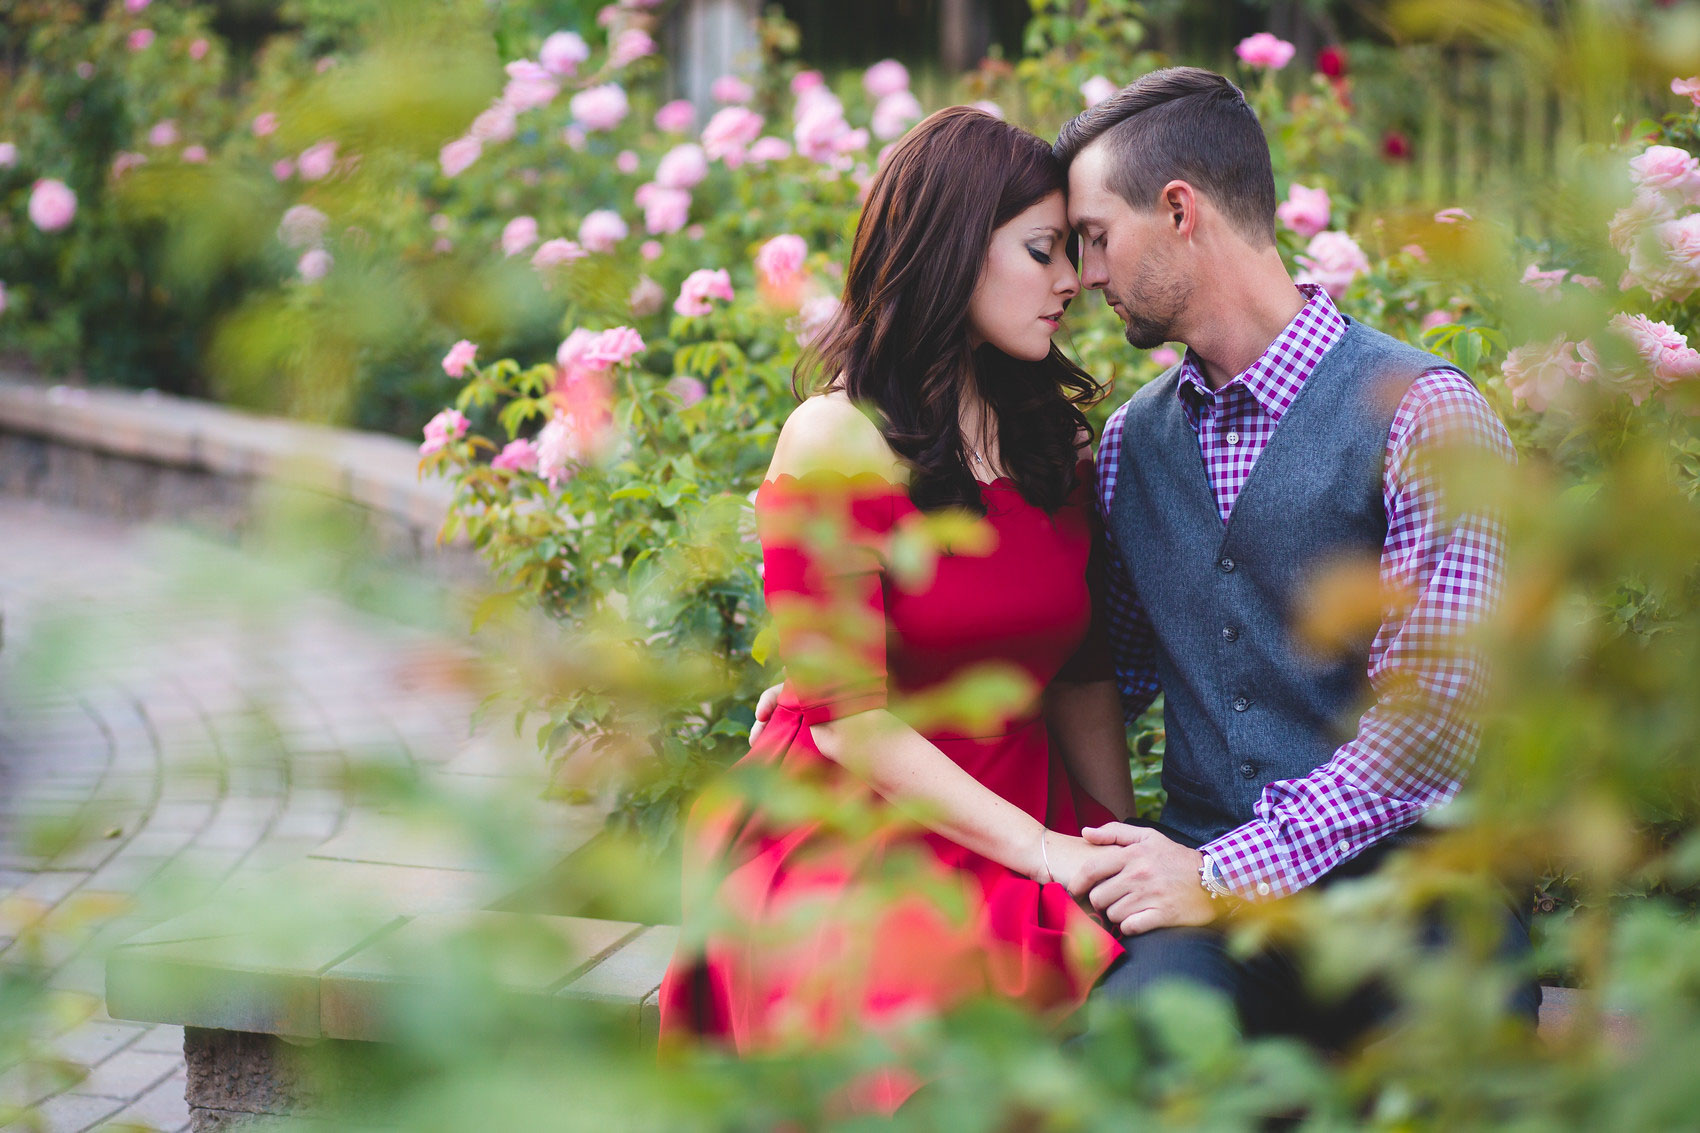 adam-szarmack-jacksonville-wedding-photographer-washington-oaks-gardens-state-park-engagement-24.jpg